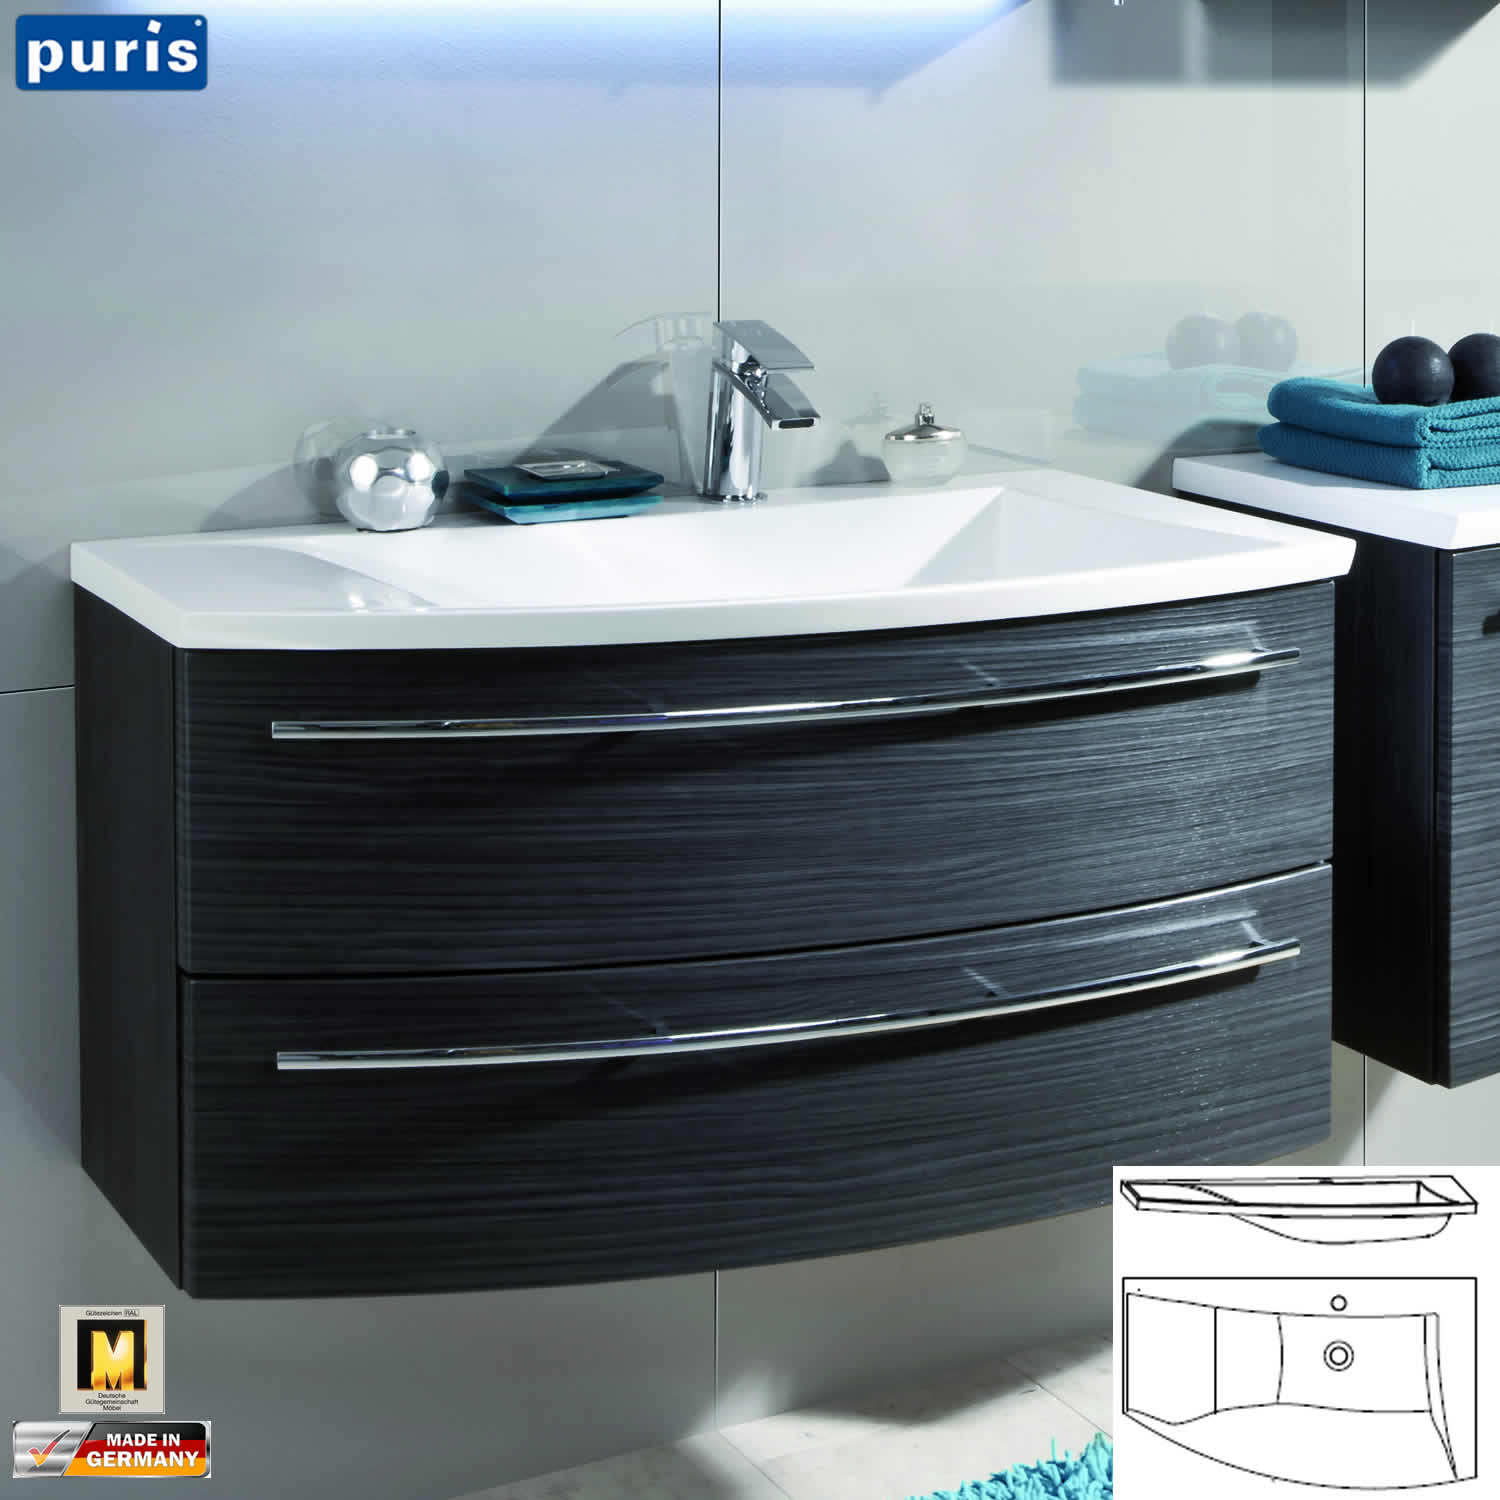 puris crescendo waschtisch set 90 cm mit erg nzungsschrank seite waschtisch w hlbar impuls. Black Bedroom Furniture Sets. Home Design Ideas